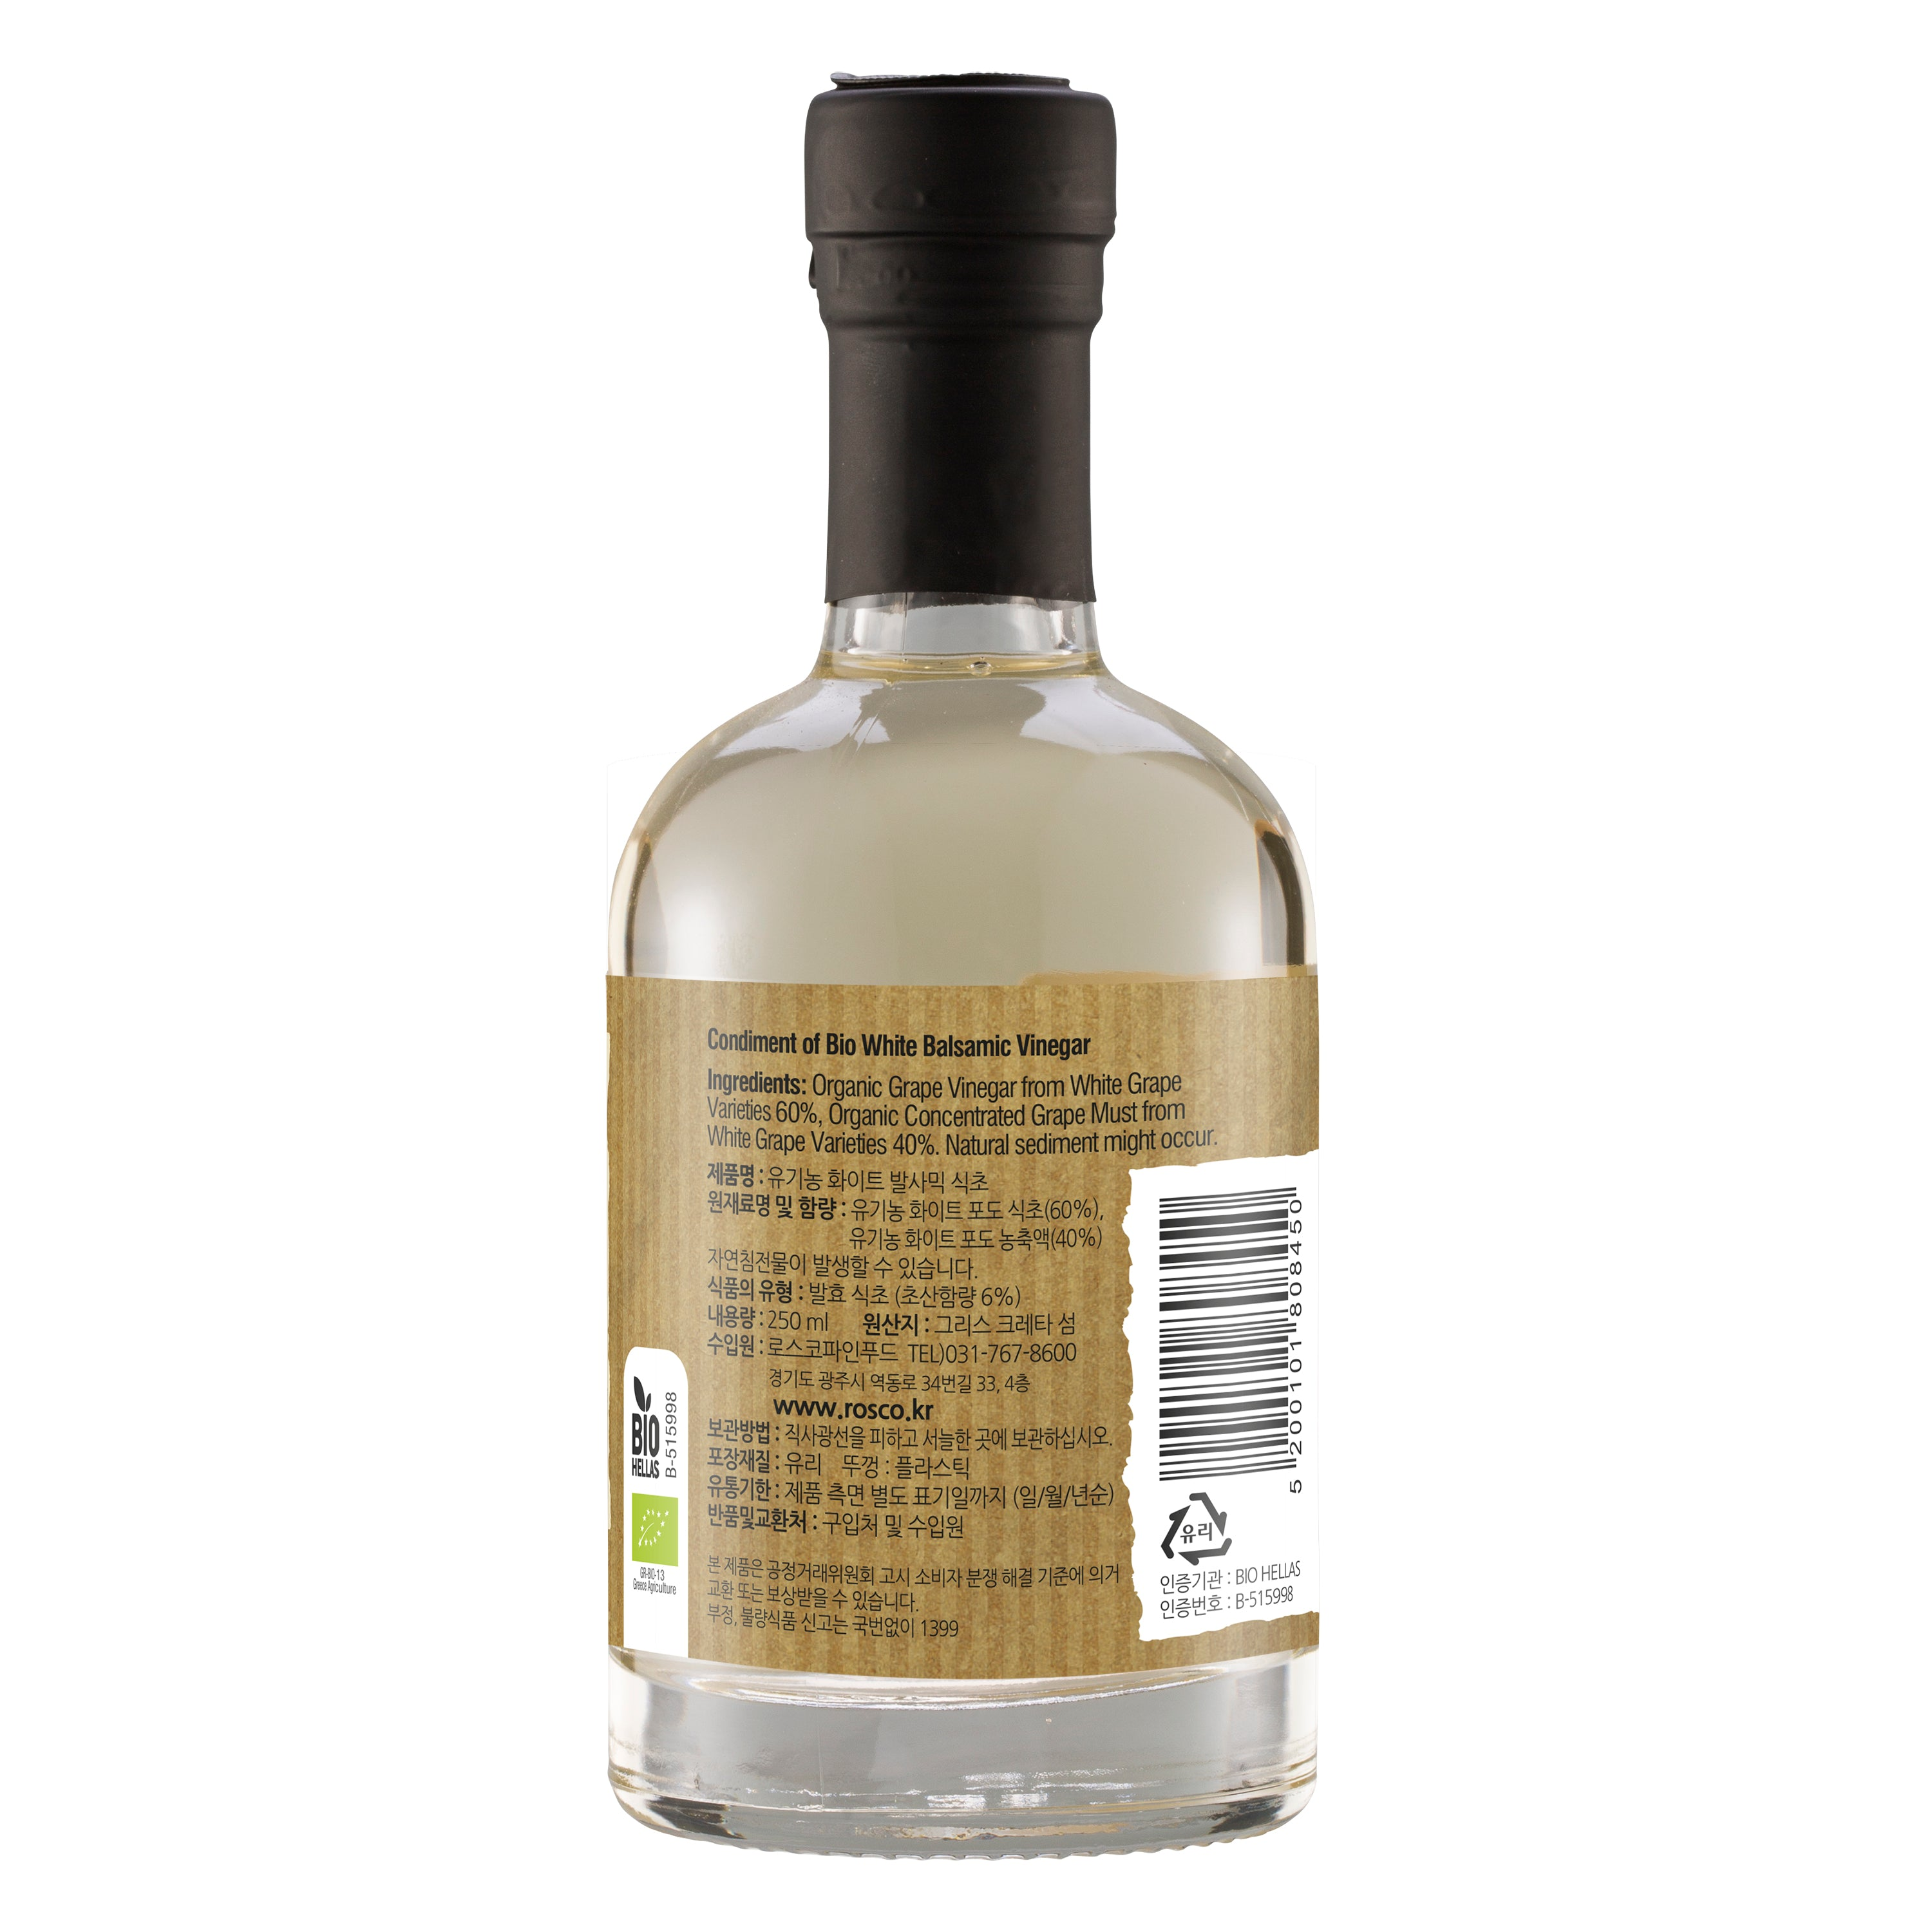 Terra Creta Organic Greek White Balsamic Vinegar - 250ml